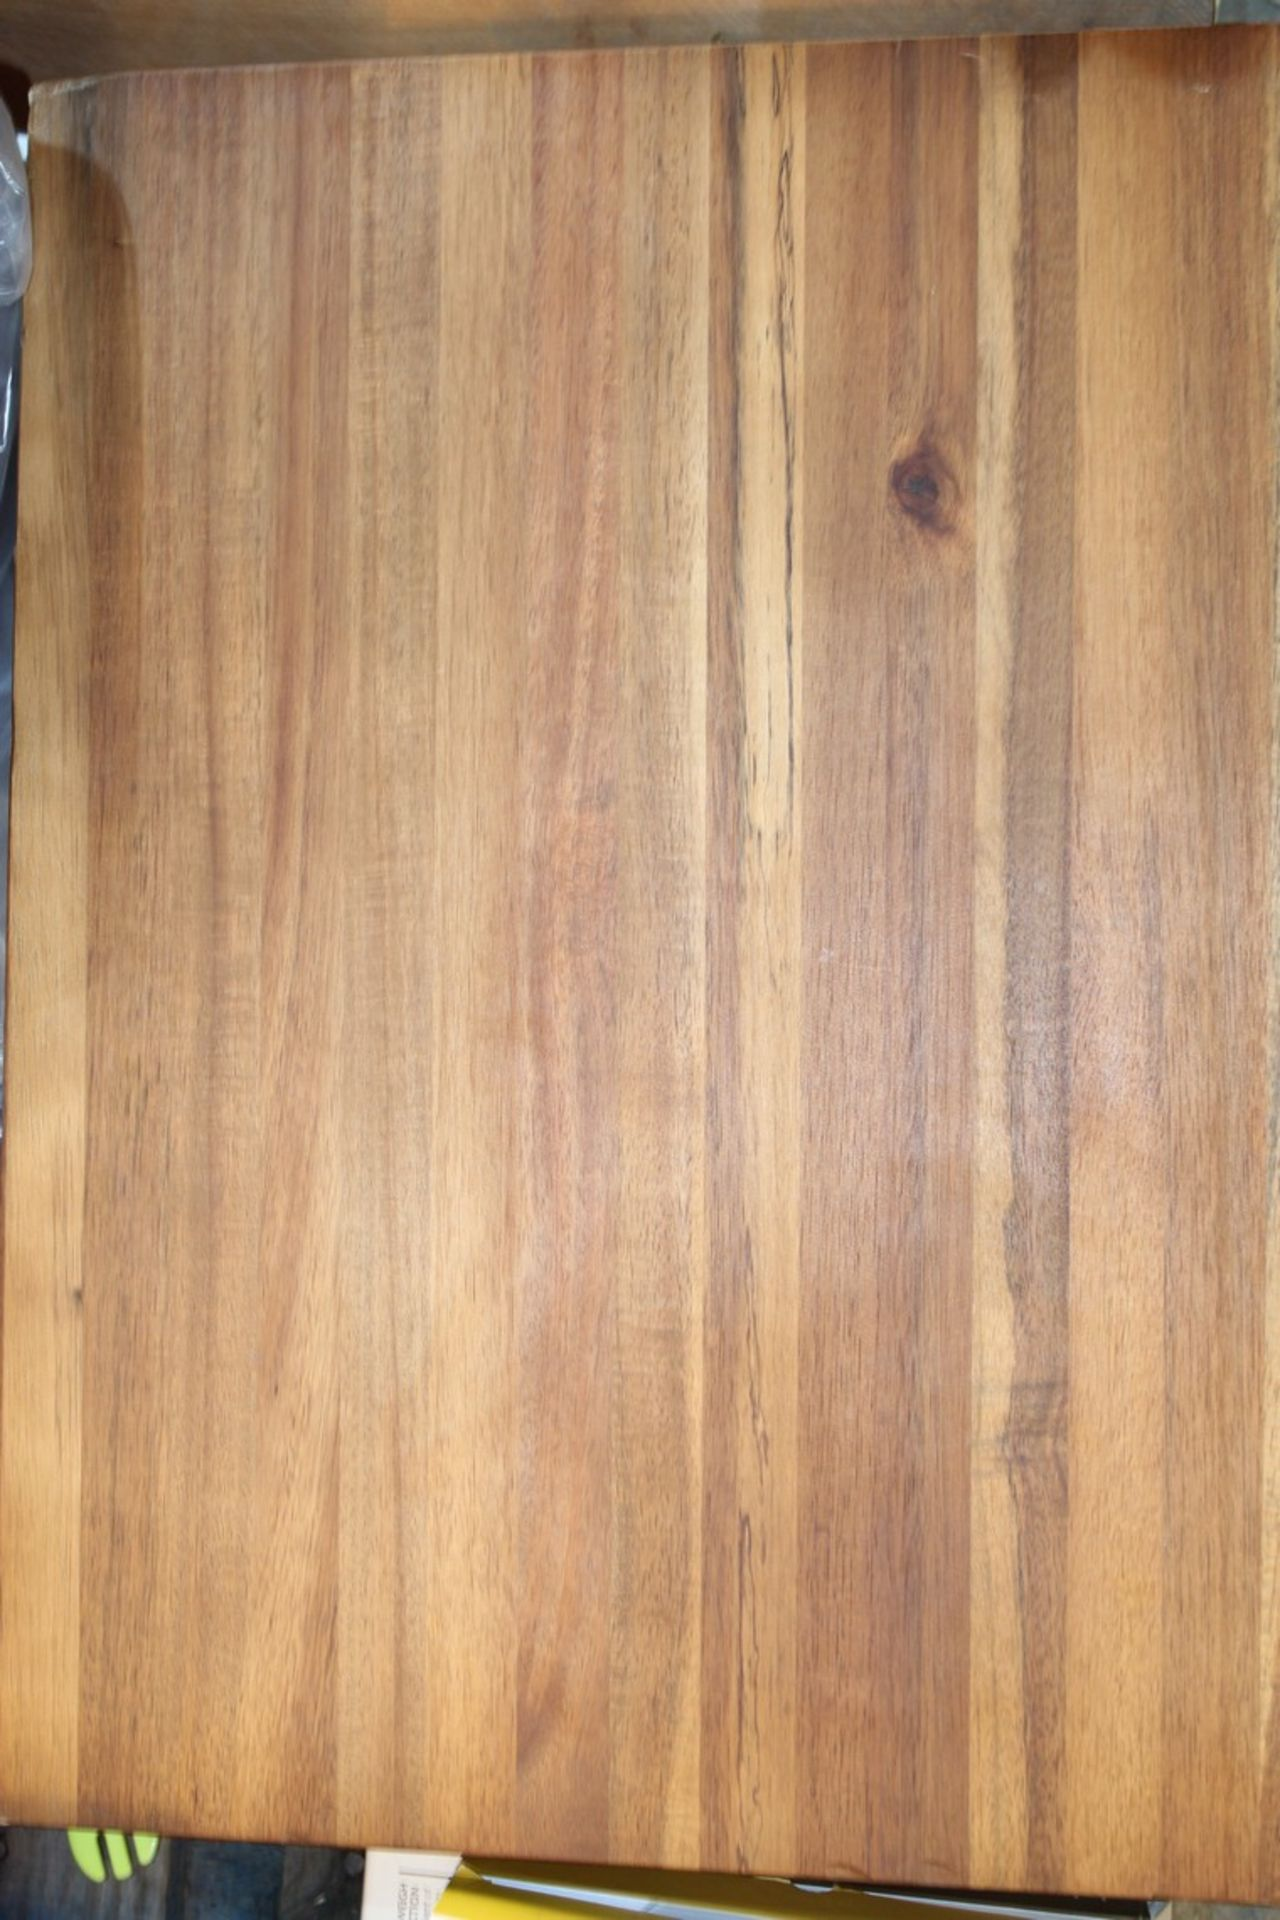 Lot 247 - Solid Wooden Acacia Chopping Boards RRP £65 Each (568319) (773705) (Pictures Are For Illustration